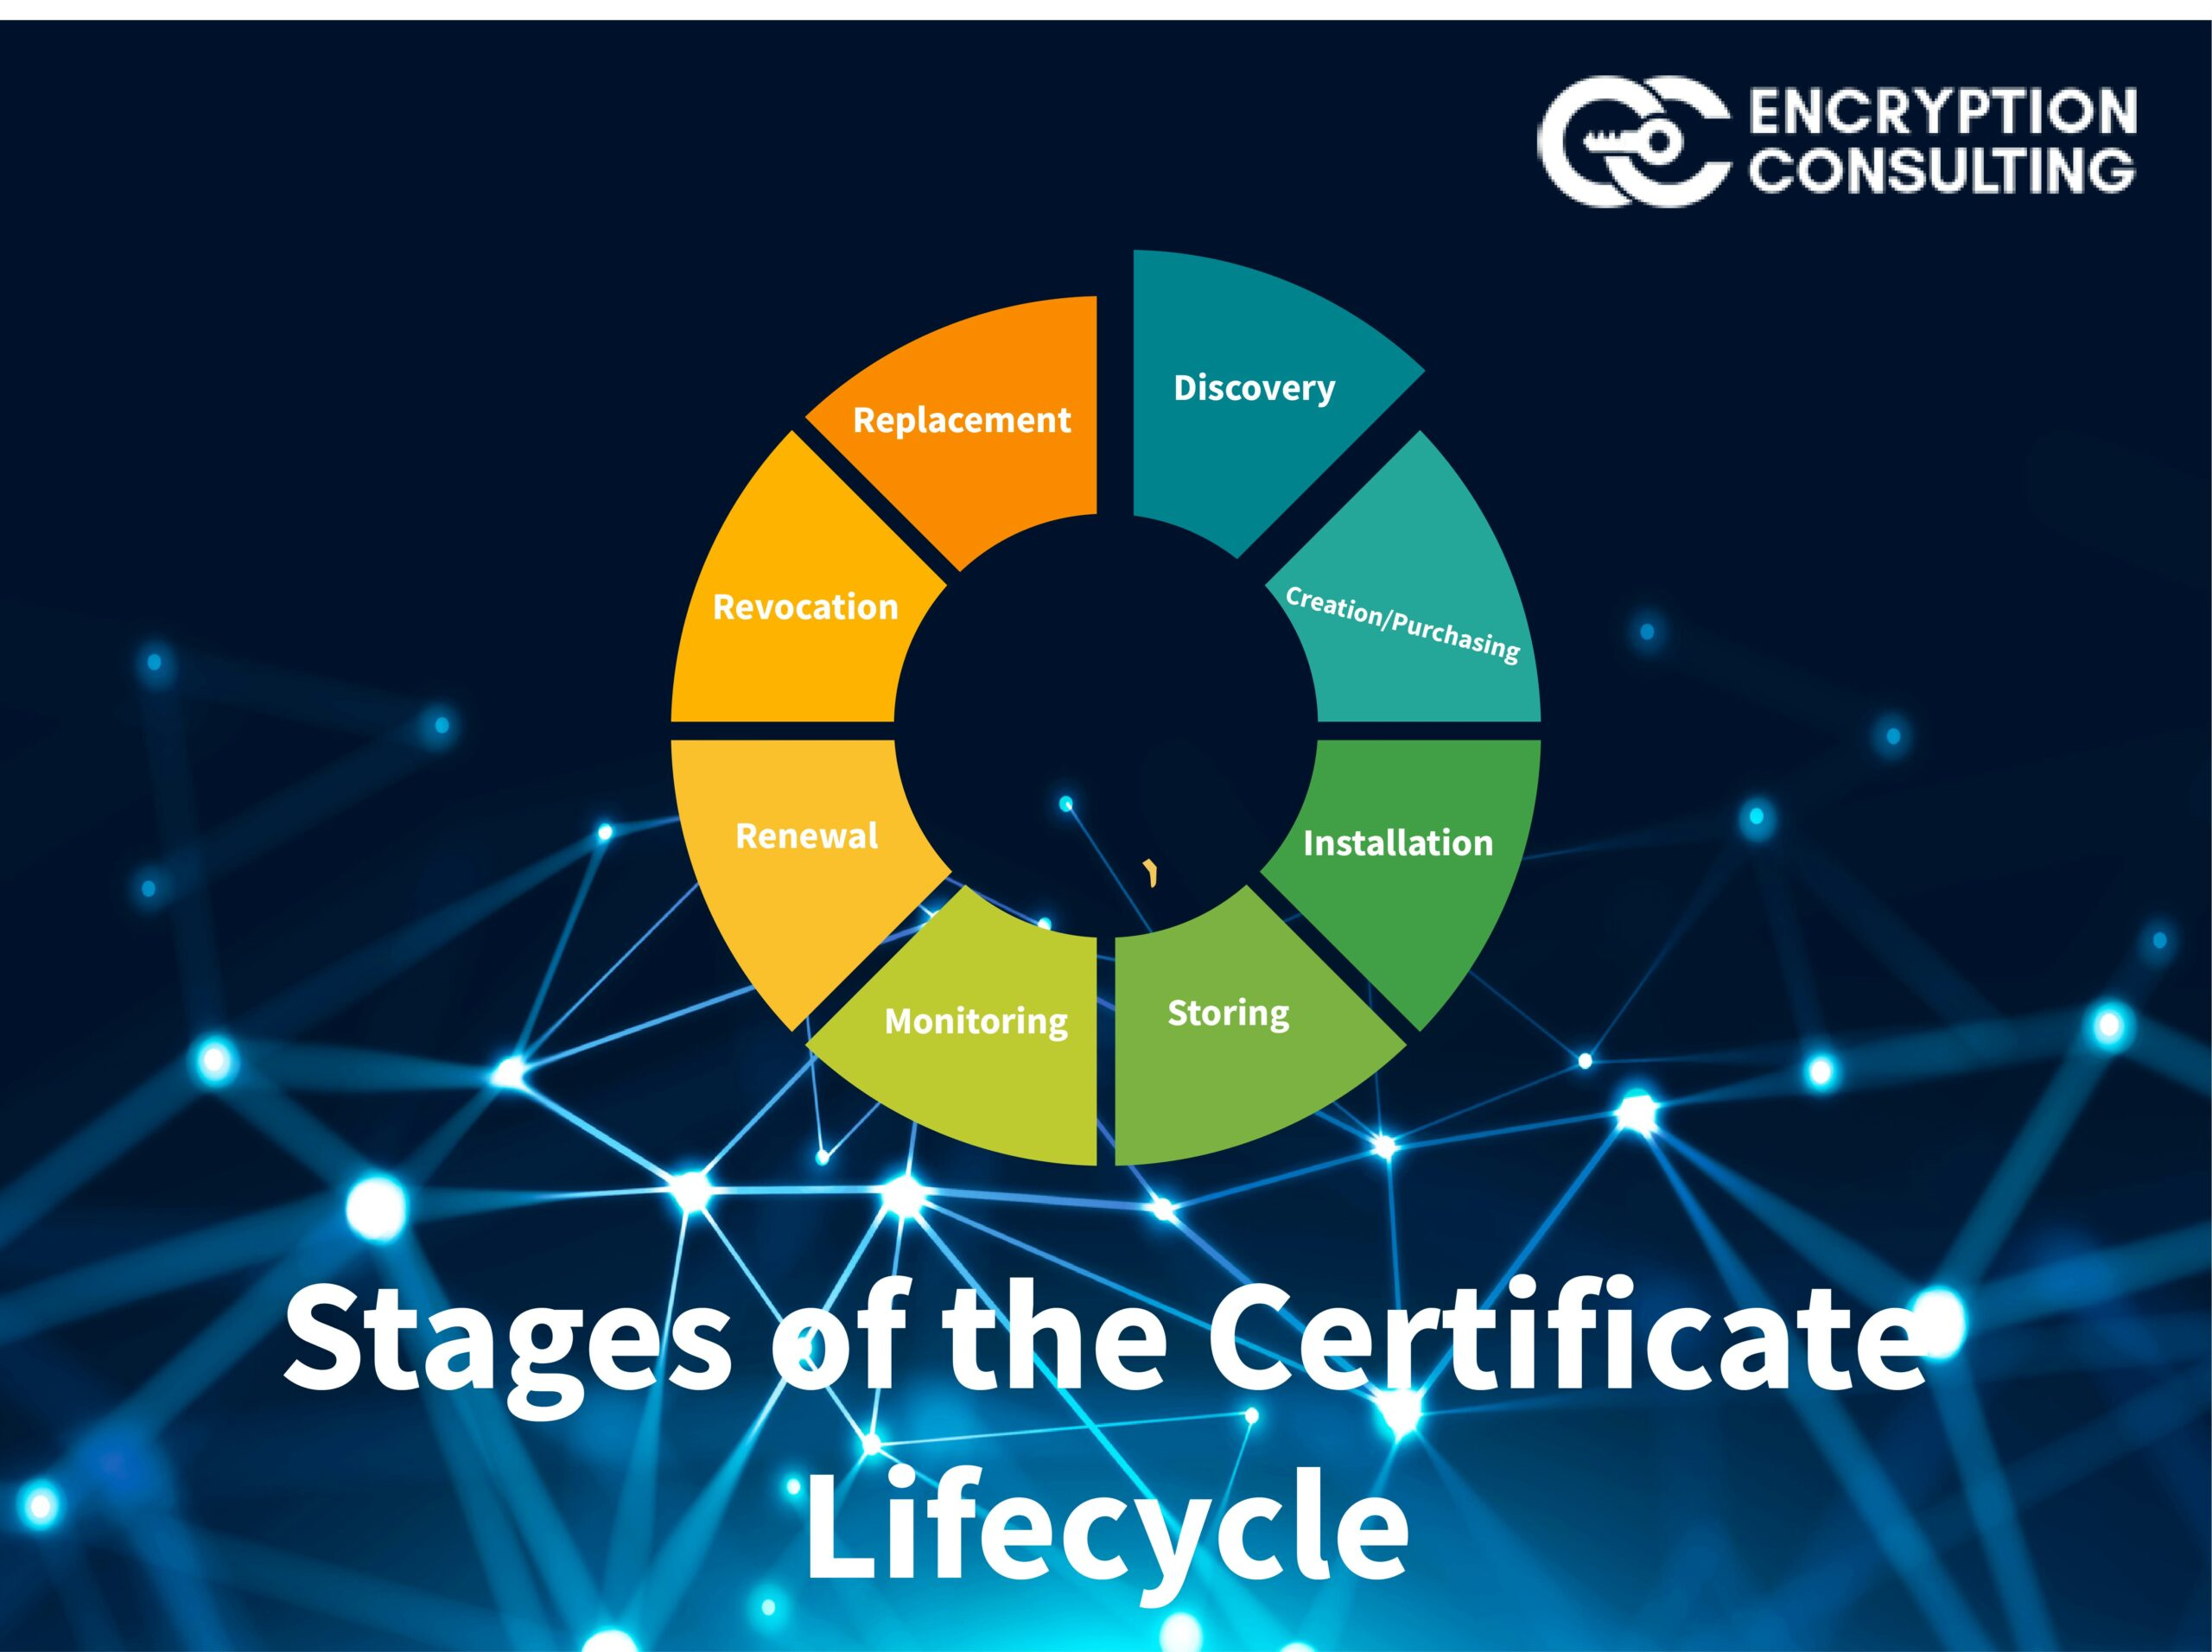 Glossary Image for Stages of the Certificate Lifecycle